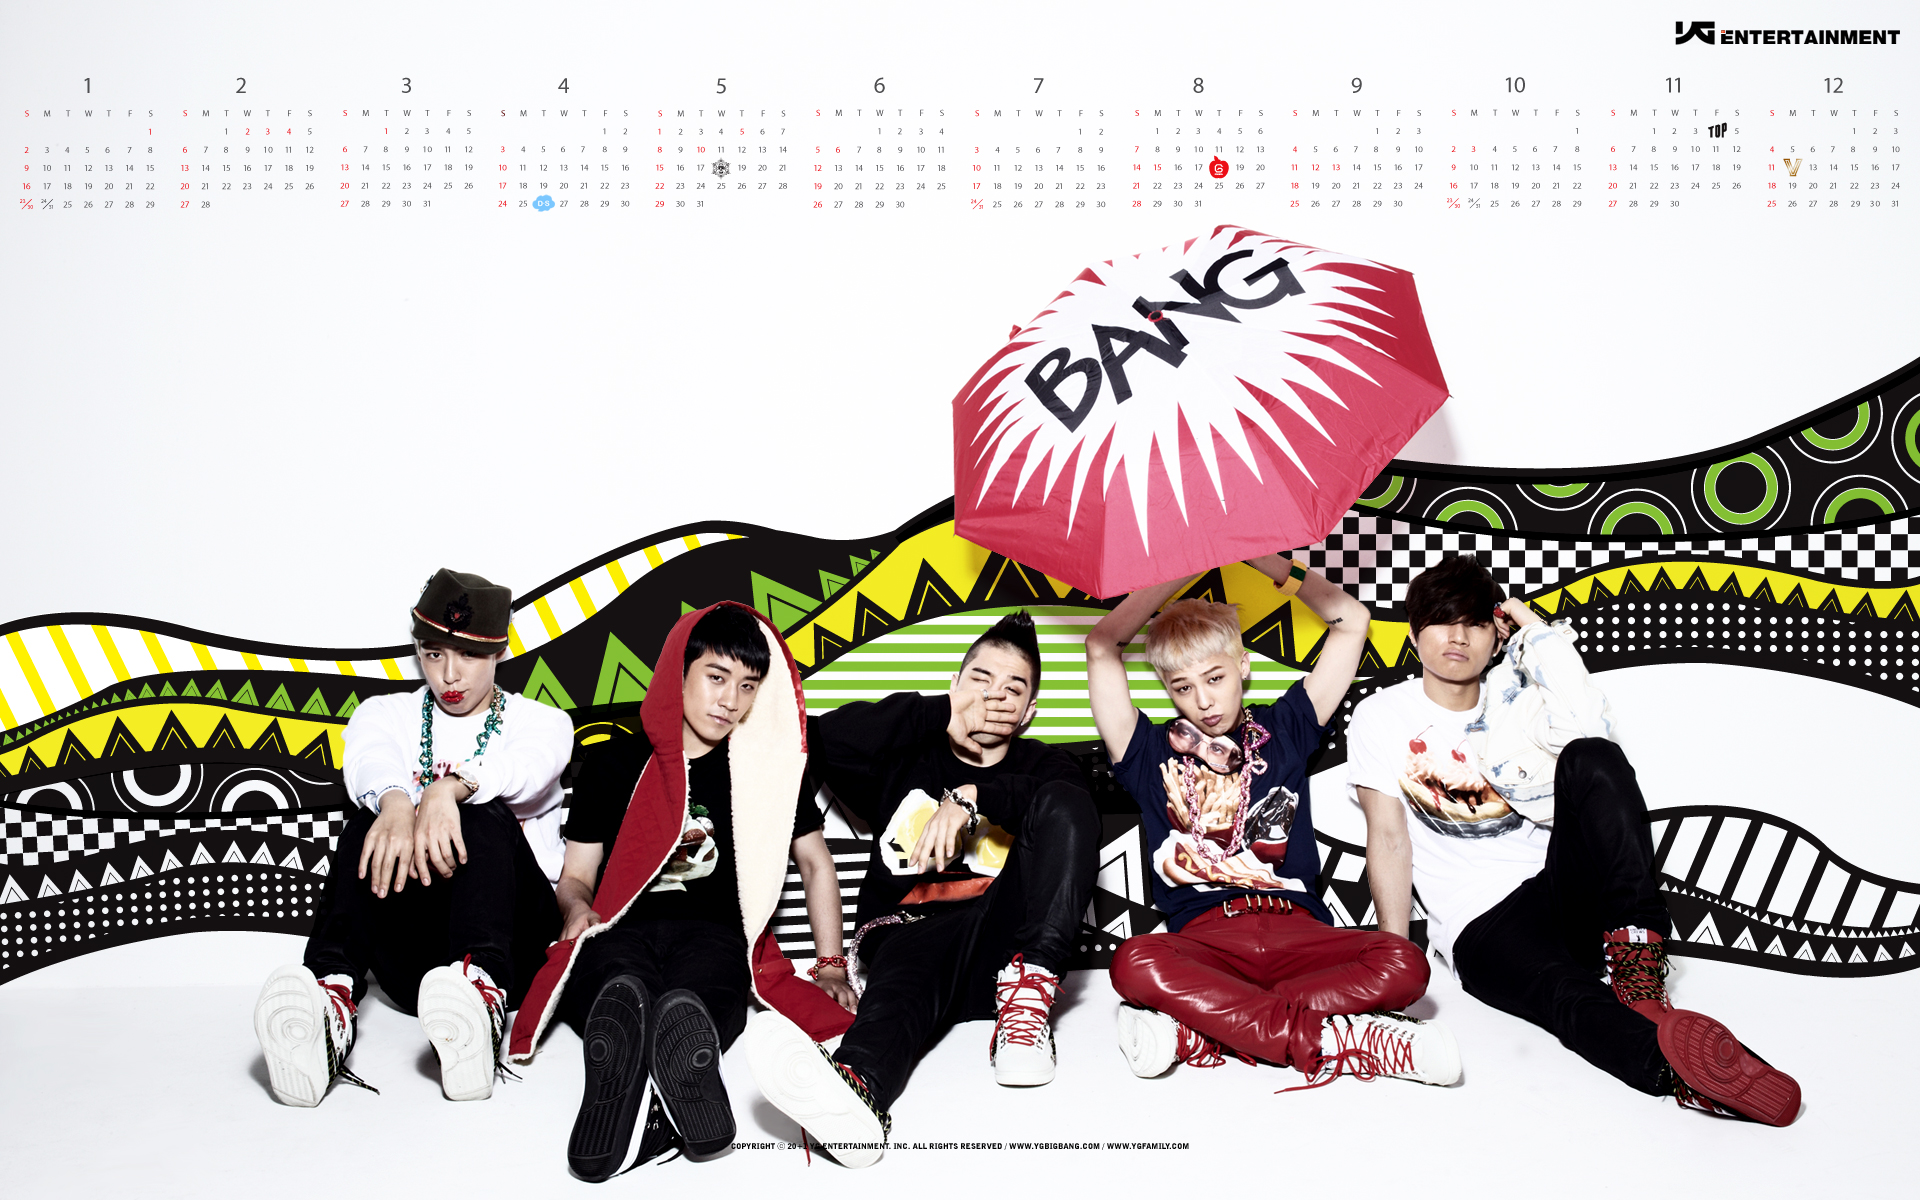 Big Bang wallpaper  kpop 4ever Wallpaper 32175169  Fanpop